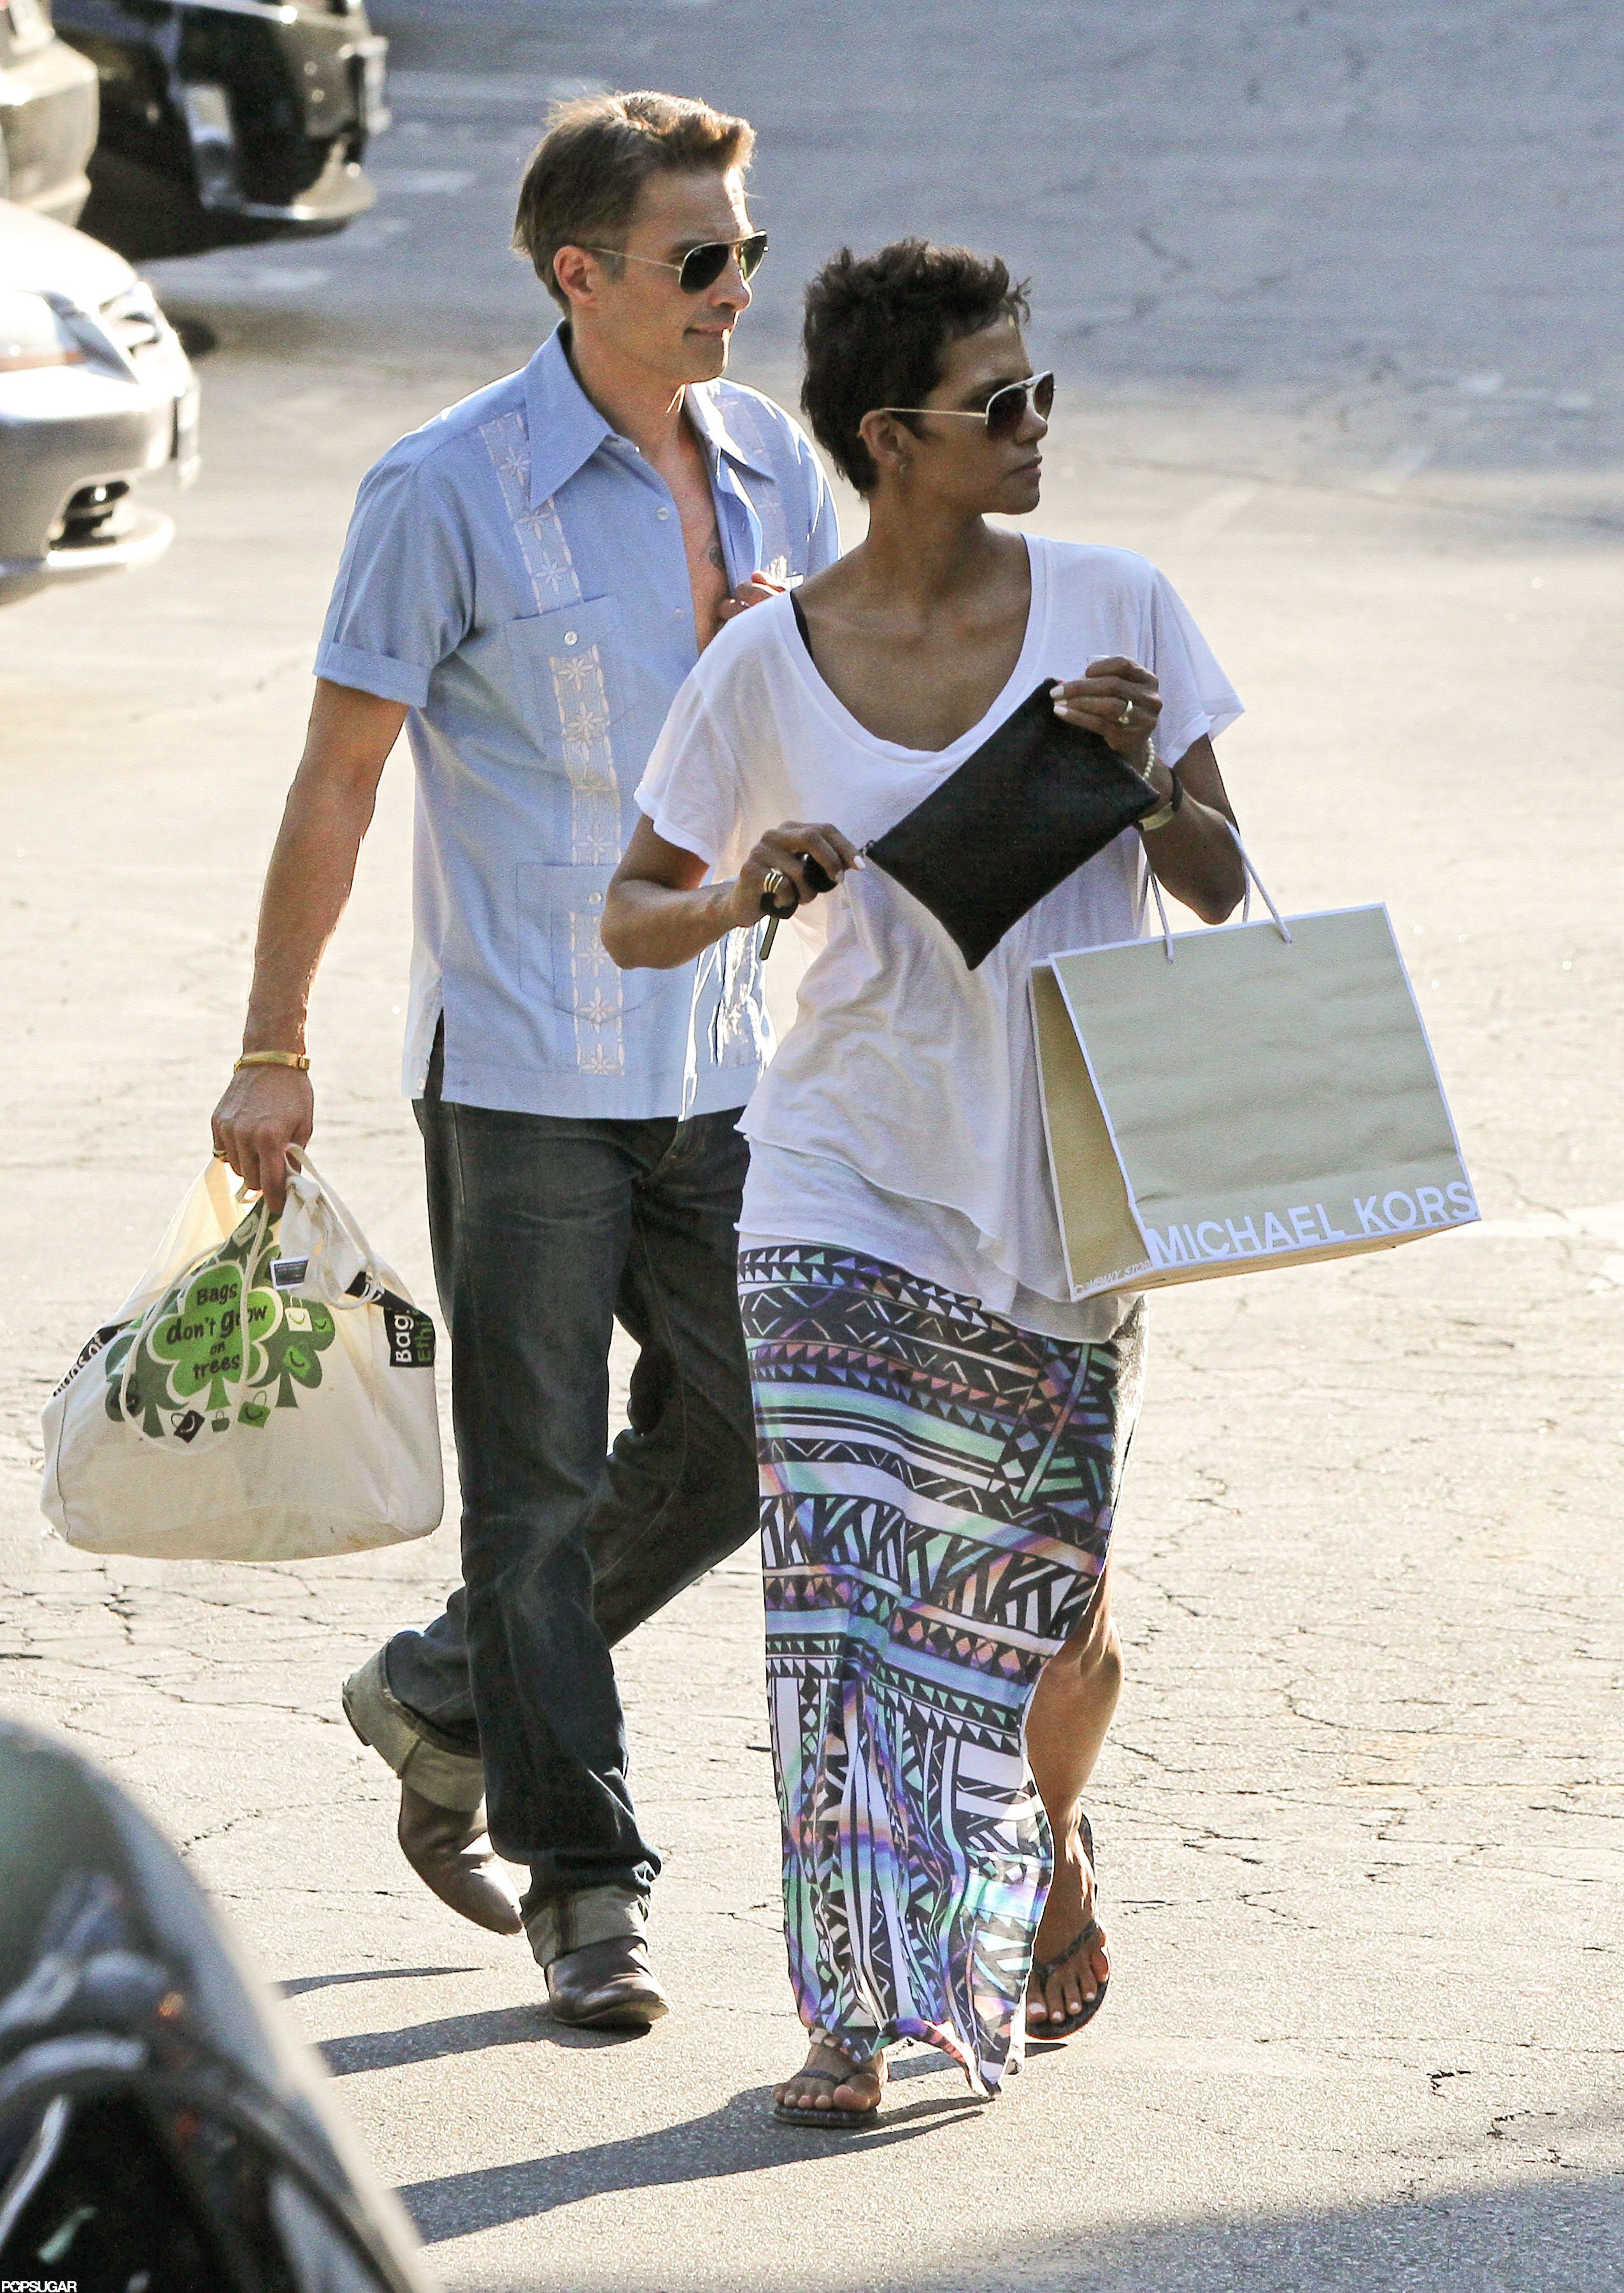 Halle Berry carried a shopping bag while out with Olivier Martinez in LA.